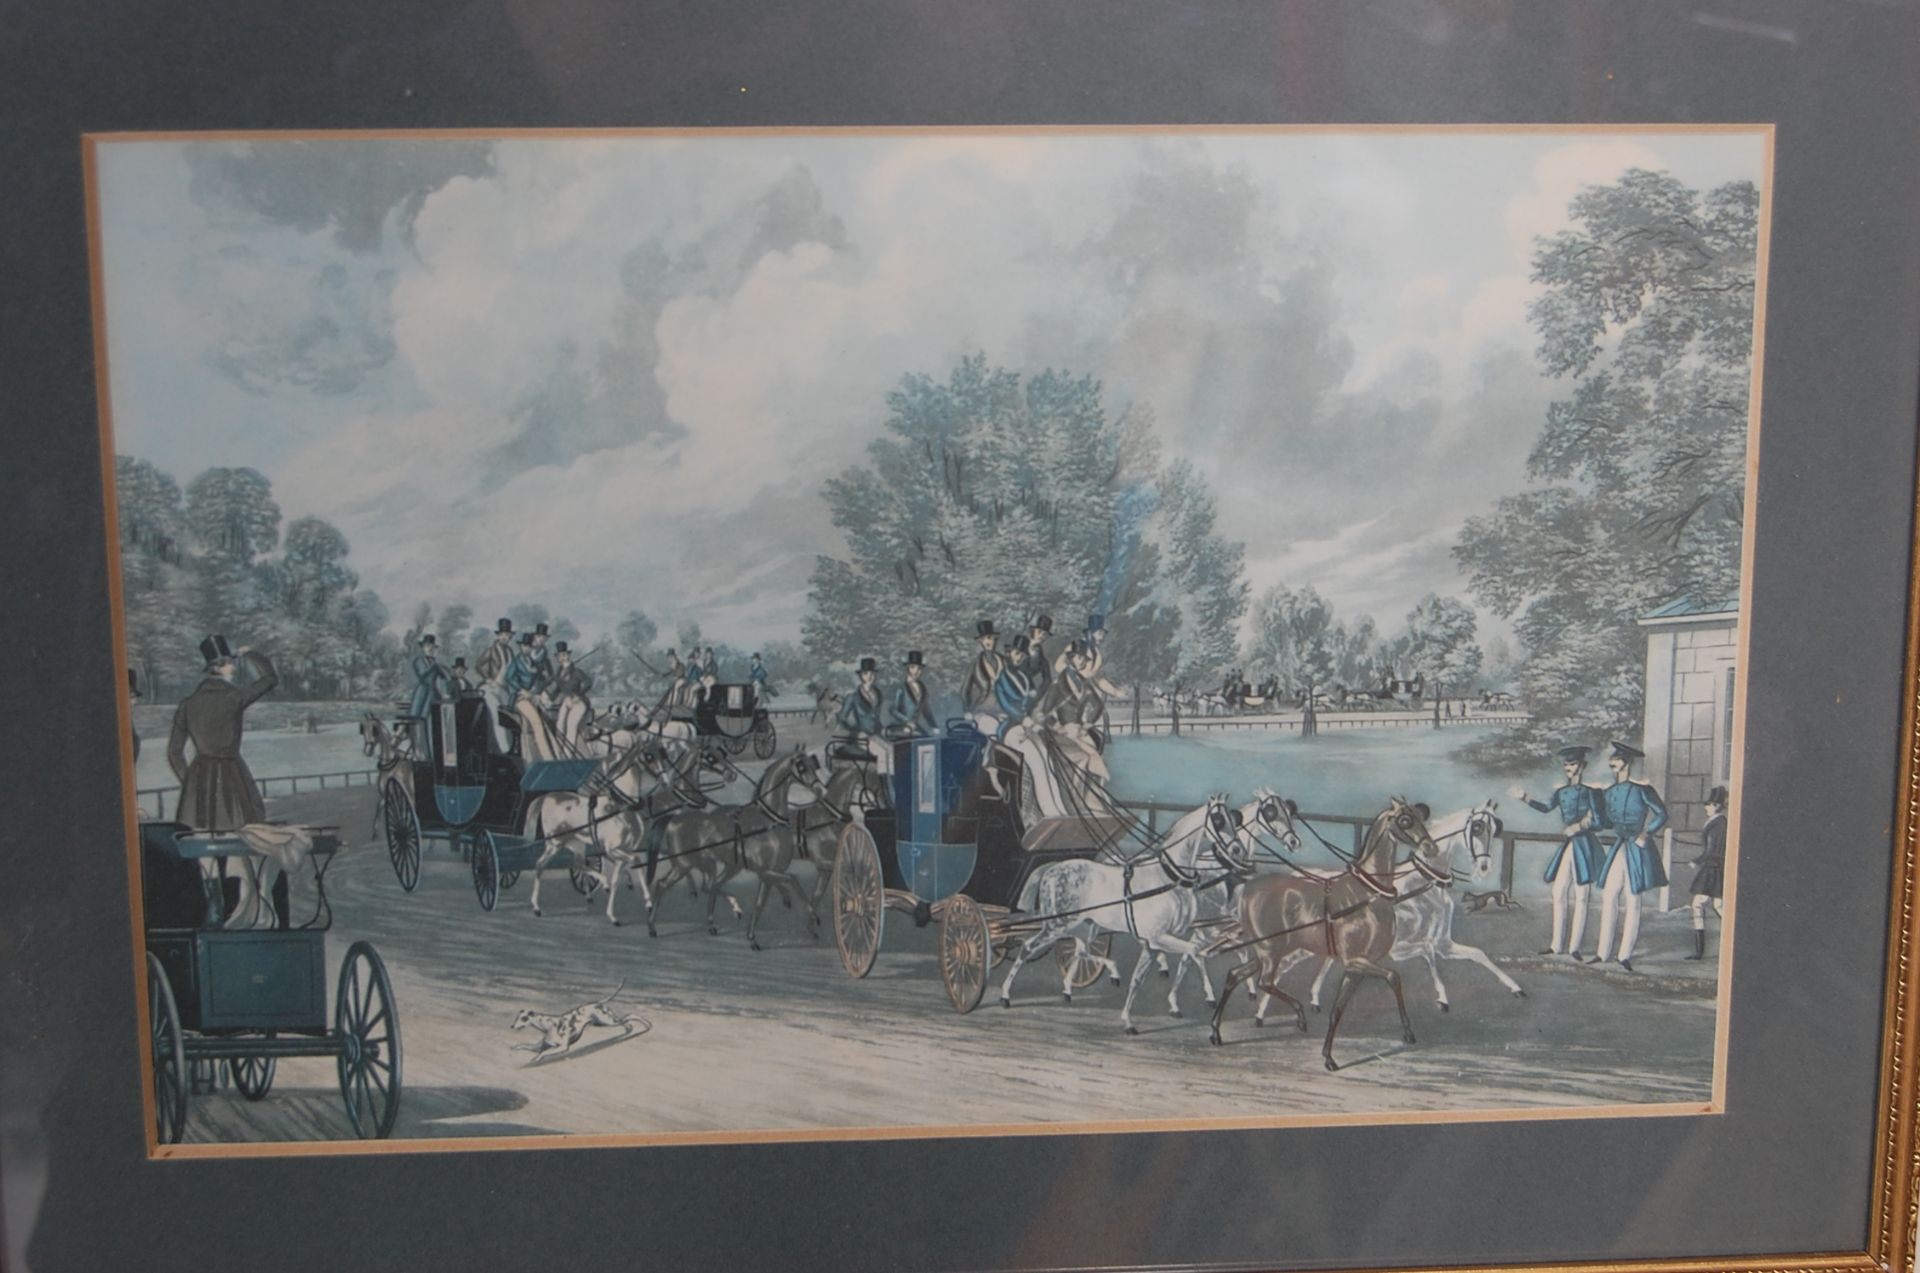 A GROUP OF SEVEN ROYAL MAIL LITHOGRAPH PRINTS DEPICTING 19TH CENTURY ROAYL MAIL COACHES - Image 6 of 13